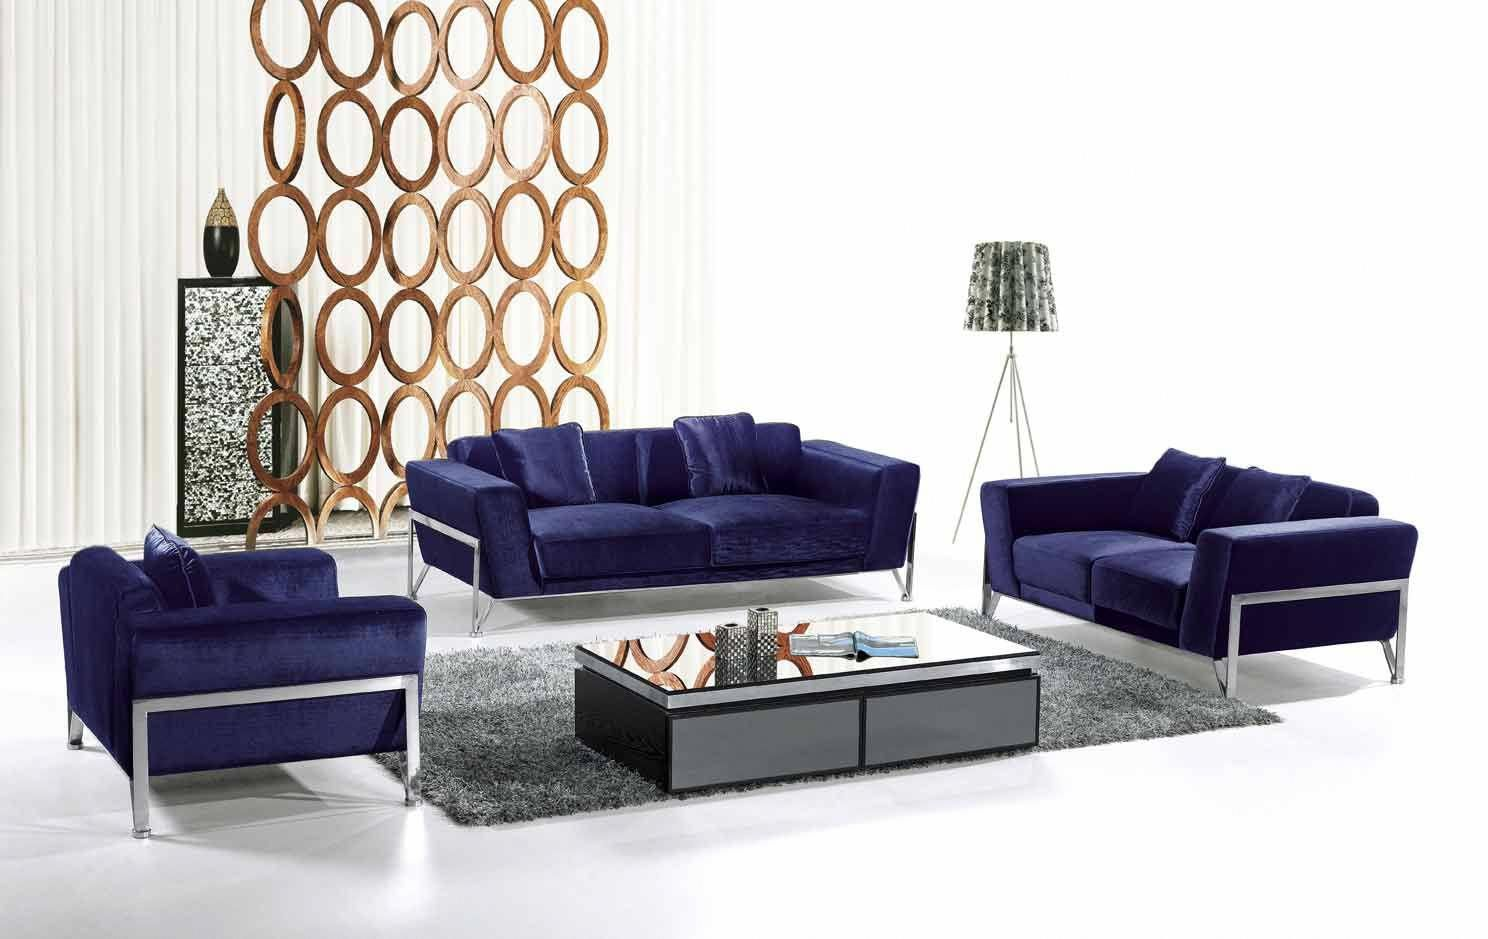 living room furniture sets austin tx chic ideas 22 busting common affordable nice cheap under 500